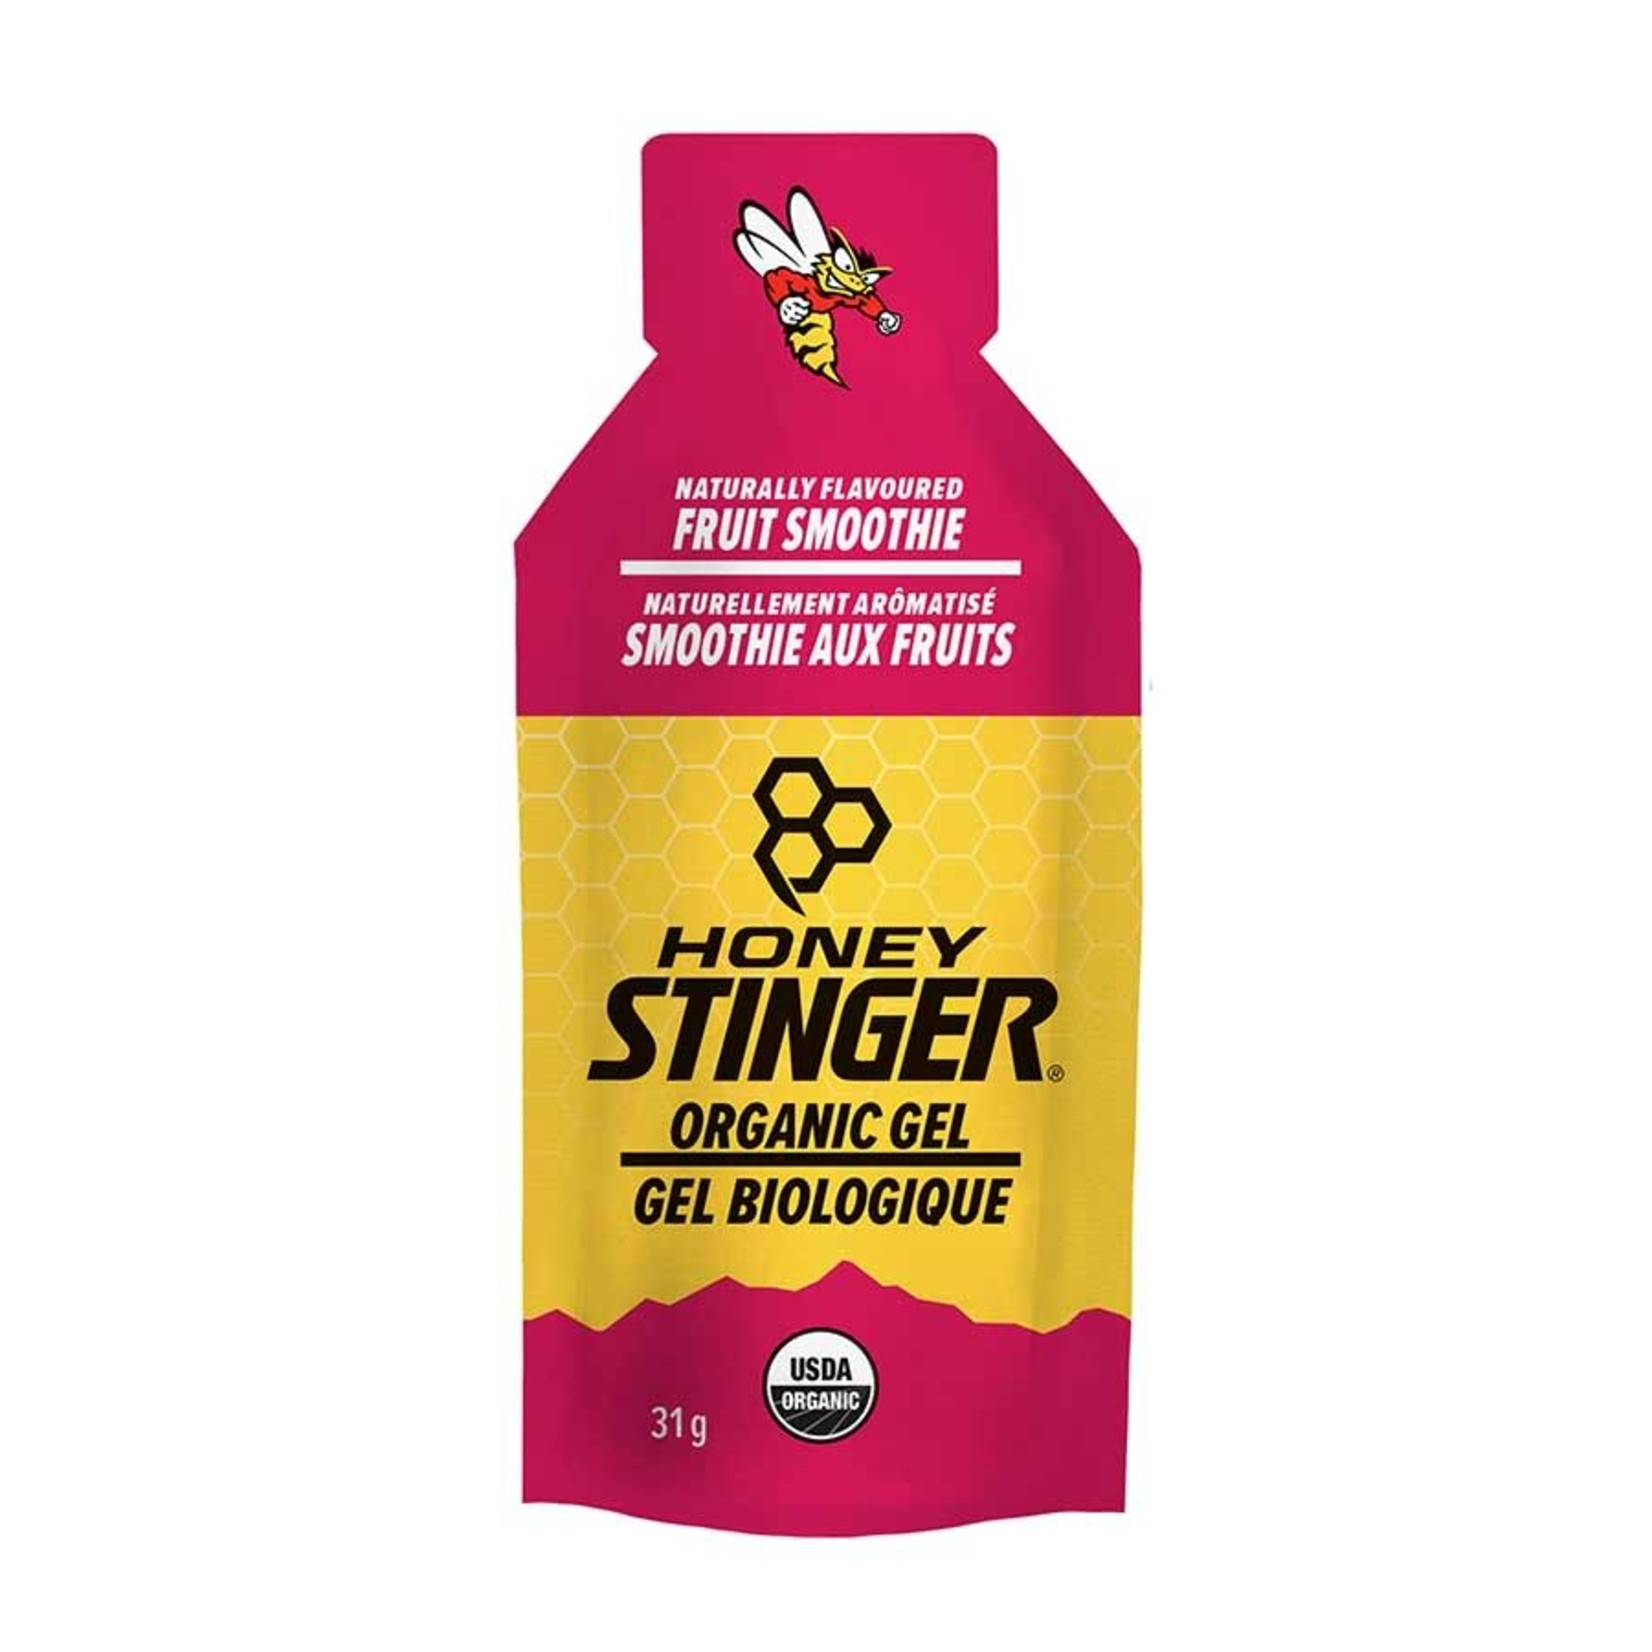 Honey Stinger Honey Stinger Organic Energy Gels, Fruit Smoothie